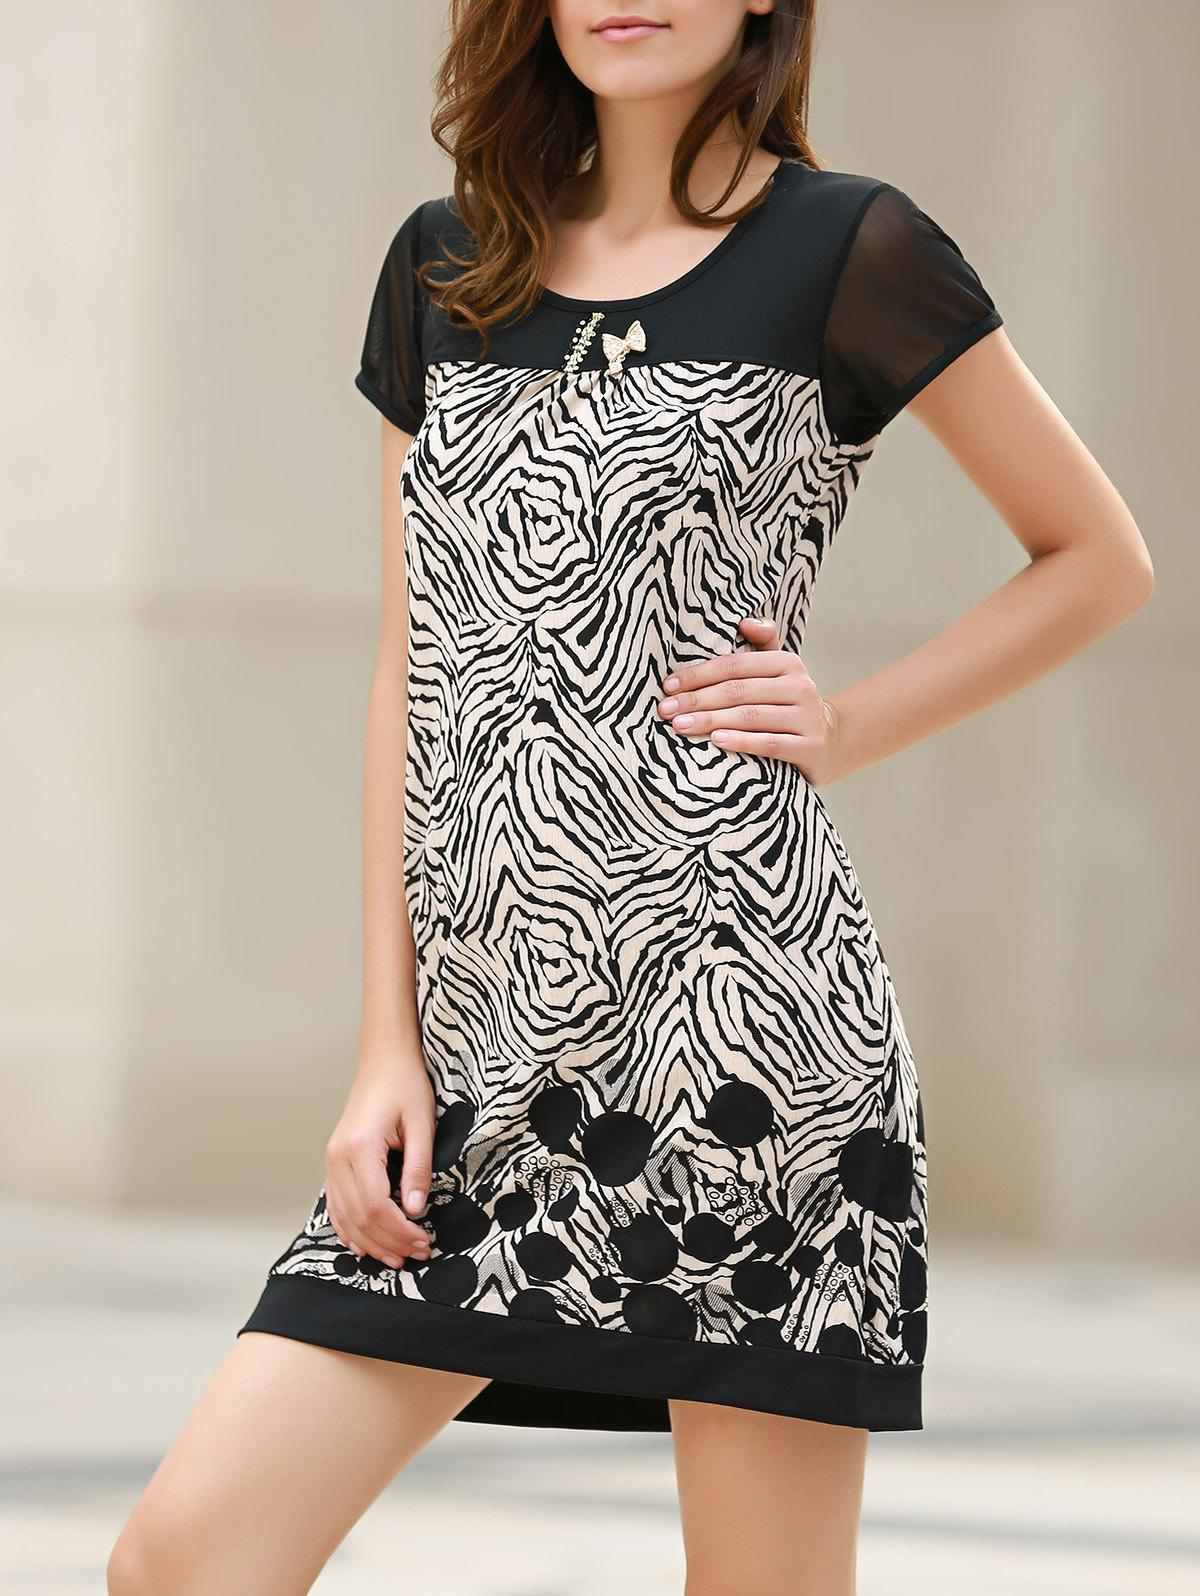 Stylish Short Sleeve Scoop Neck Spliced Loose-Fitting Printed Women's Dress -  WHITE/BLACK